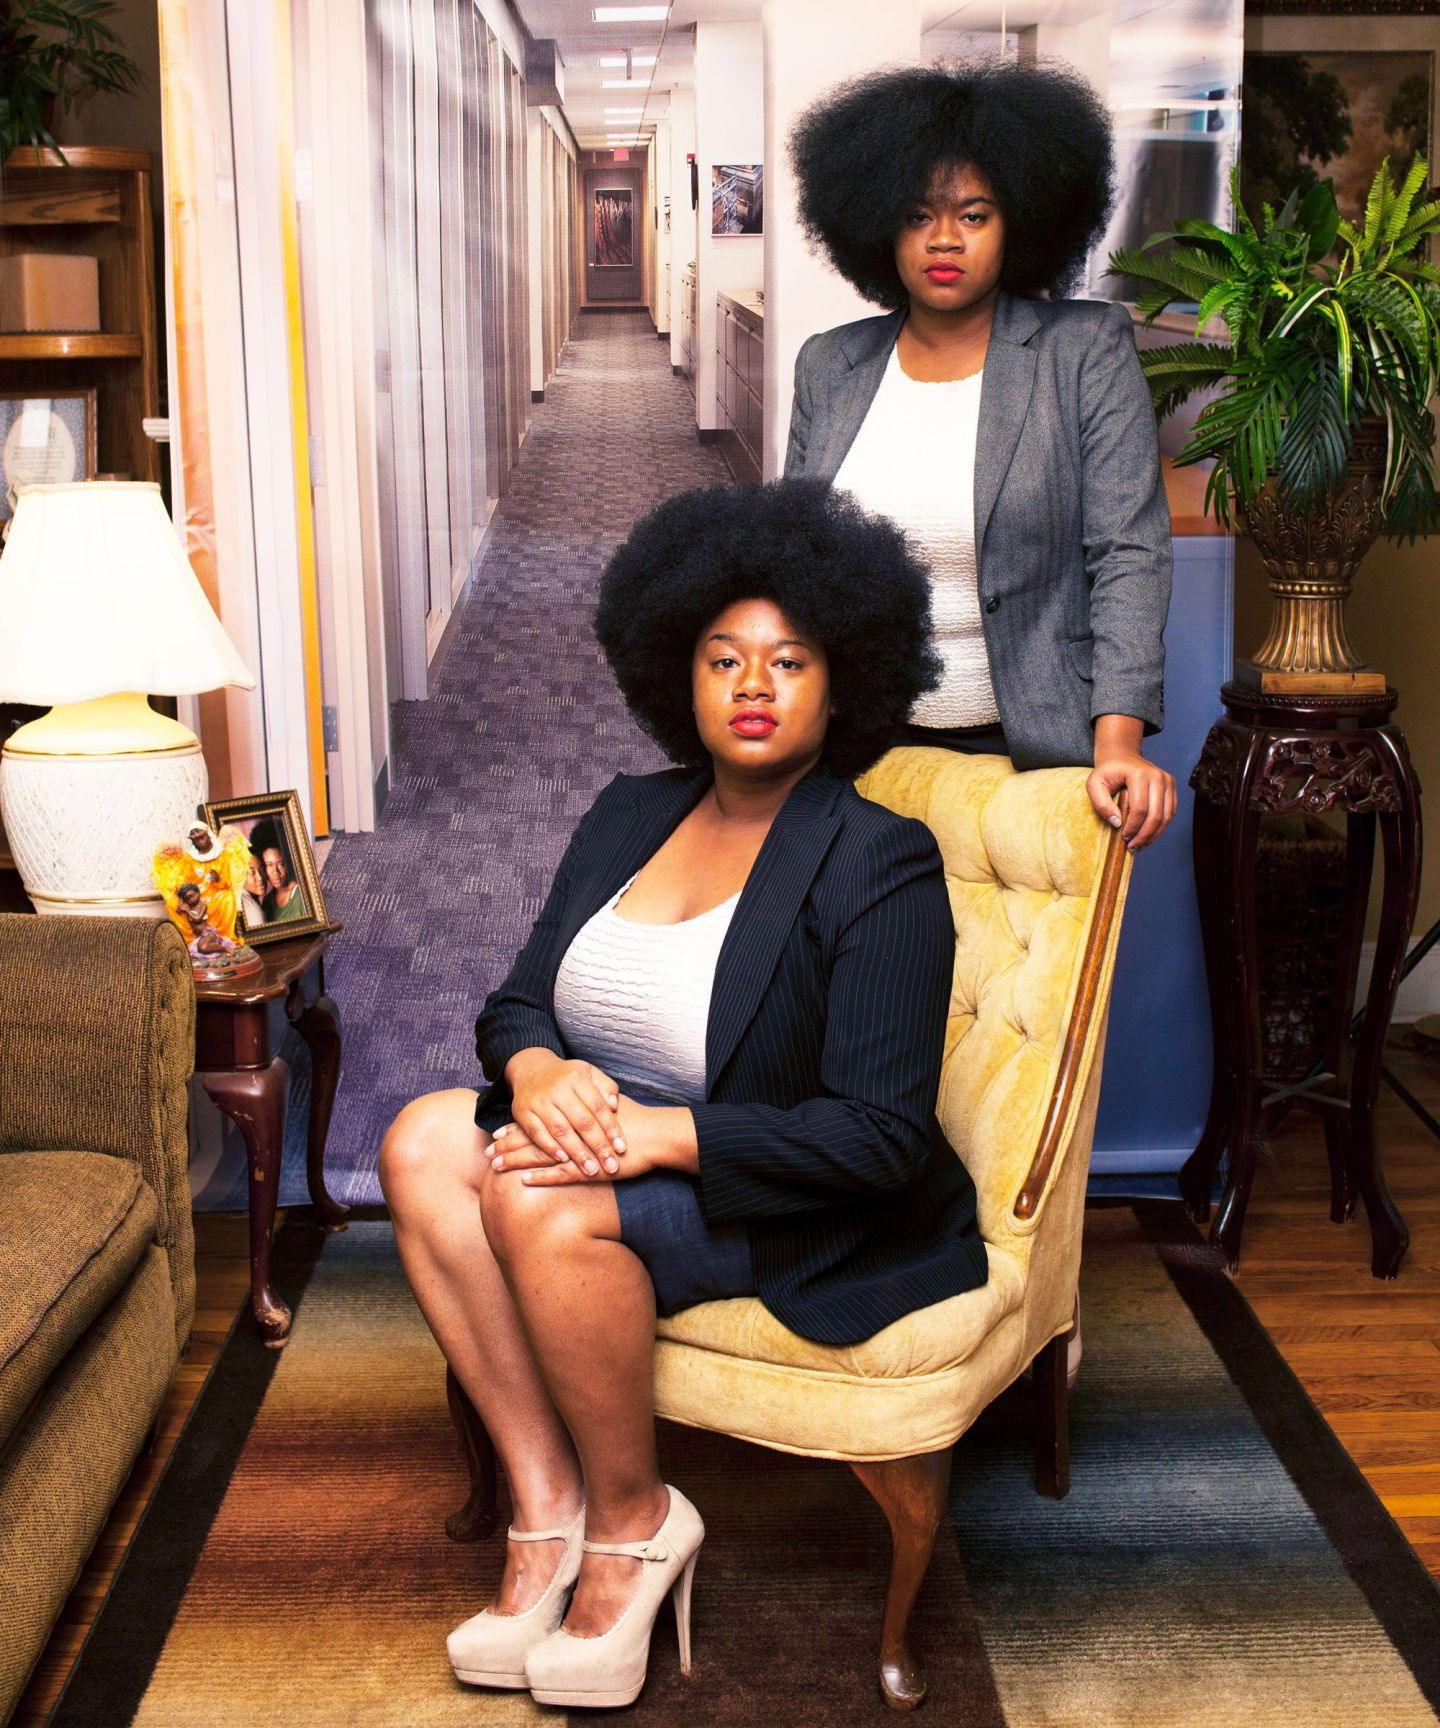 Endia-AM-I-WHAT-YOURE-LOOKING-FOR-SABRINA-AND-KATRINA-2015-1 10 Southern Black Women Artists to Watch from Expert Curator Jonell Logan